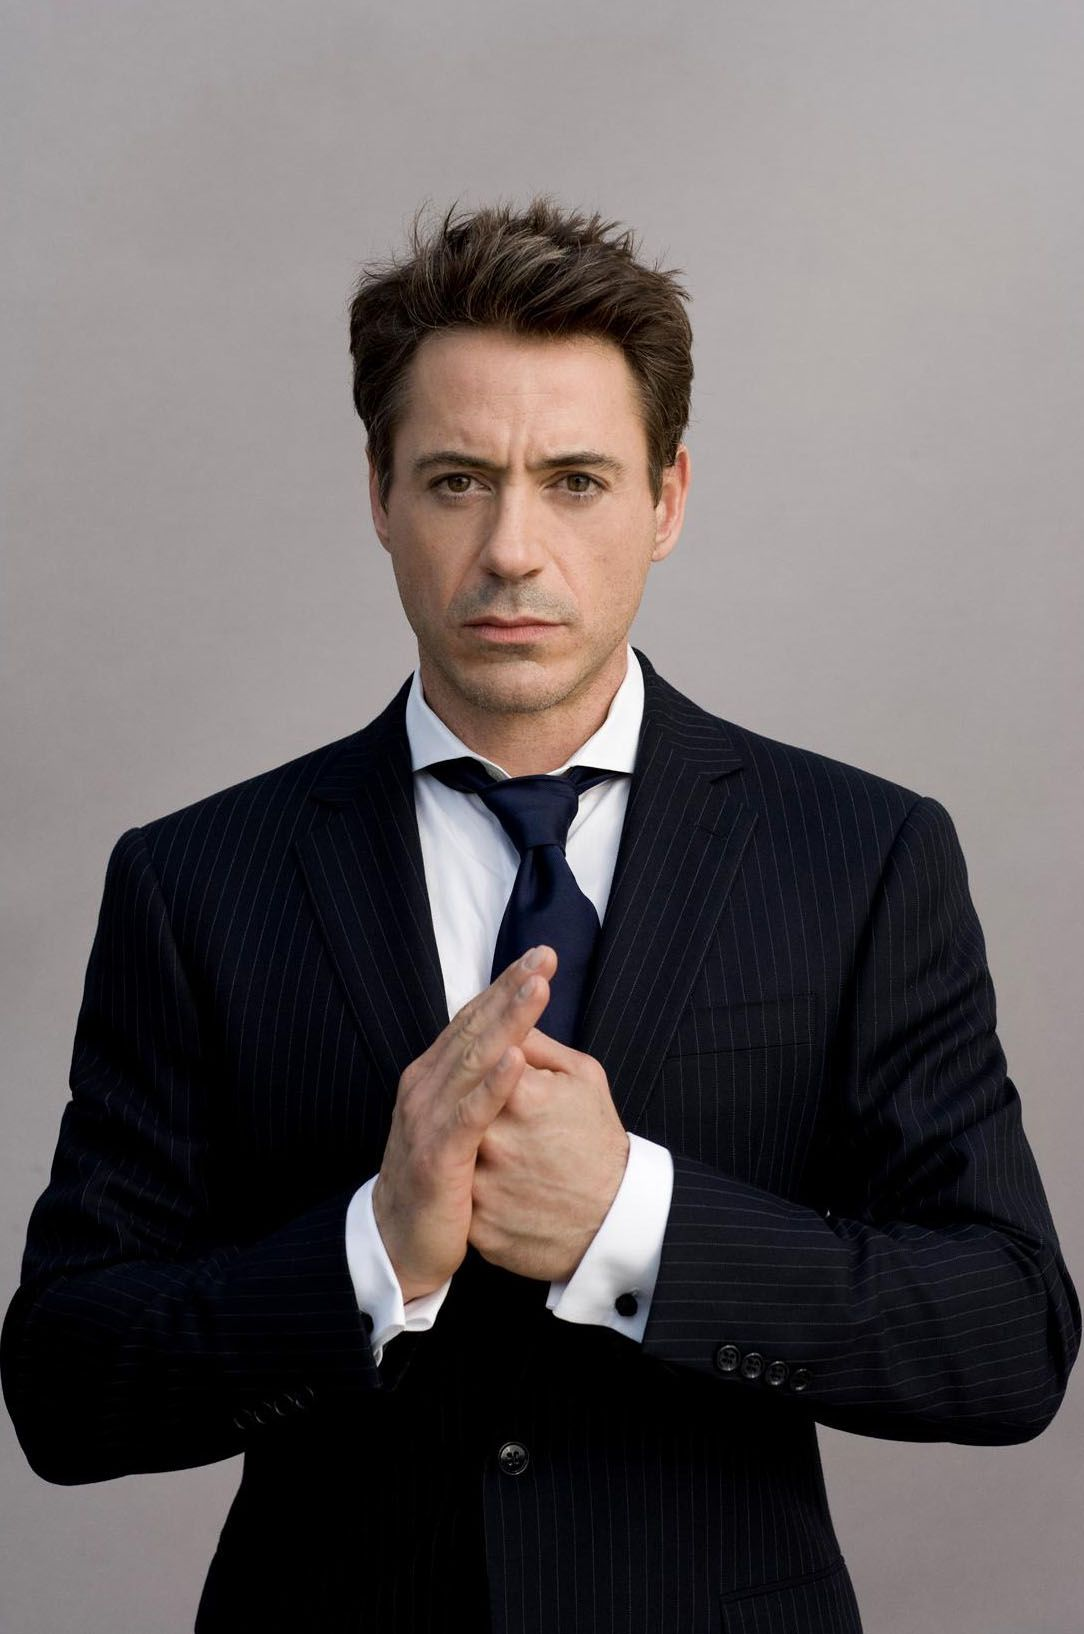 Robert Downey Jr Robert Downey Jr Downey Junior Downey